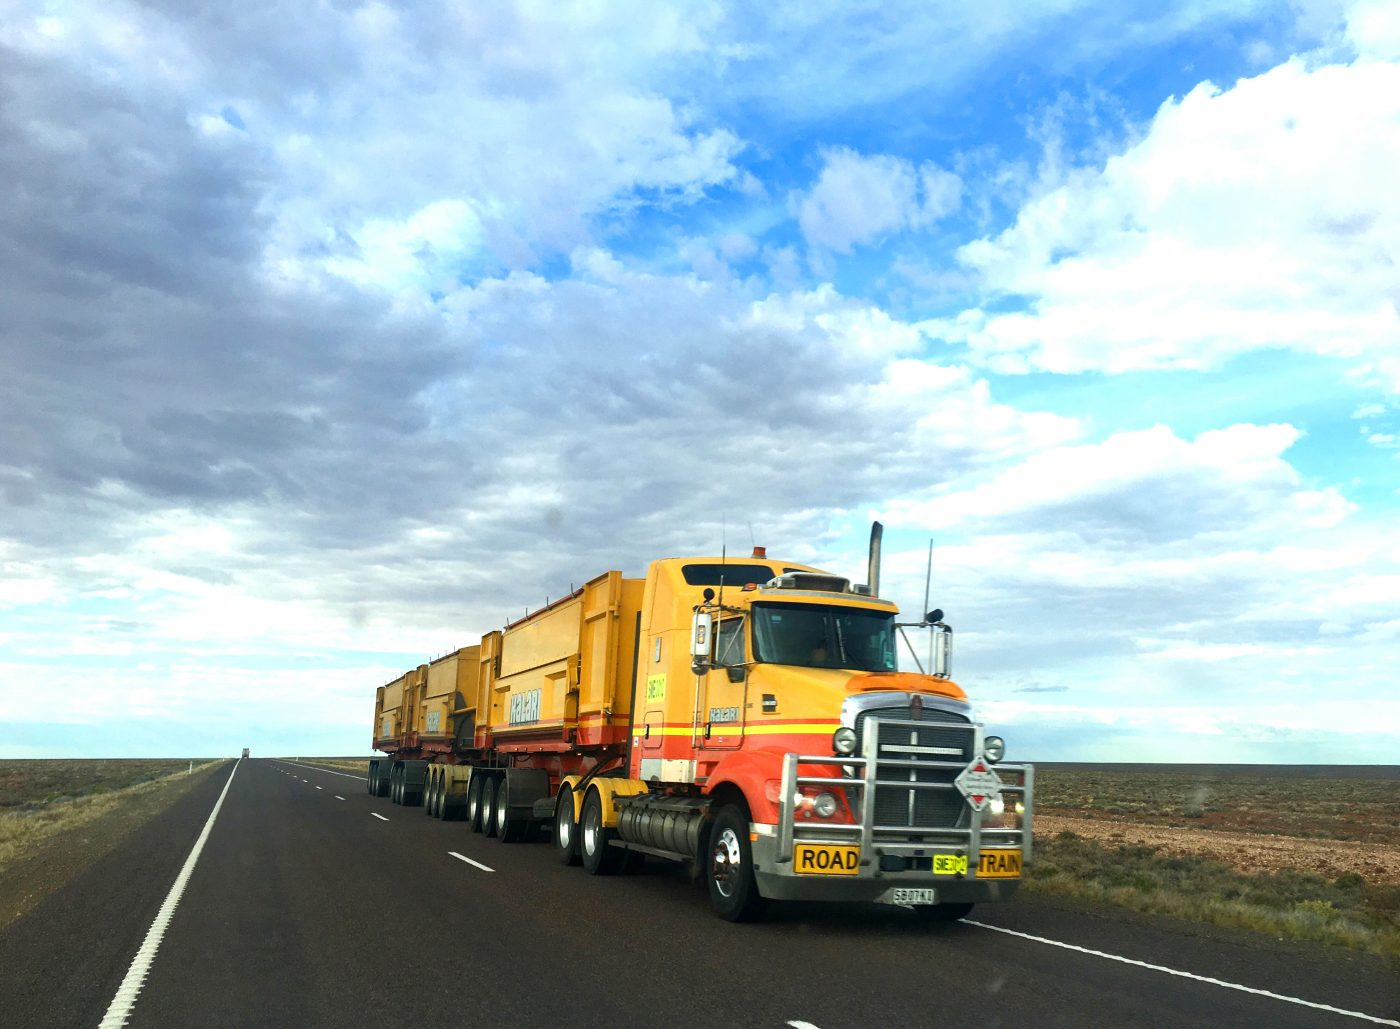 What You Need to Know About Domestic Full Truckload and Less Than Truckload - LTL Shipments